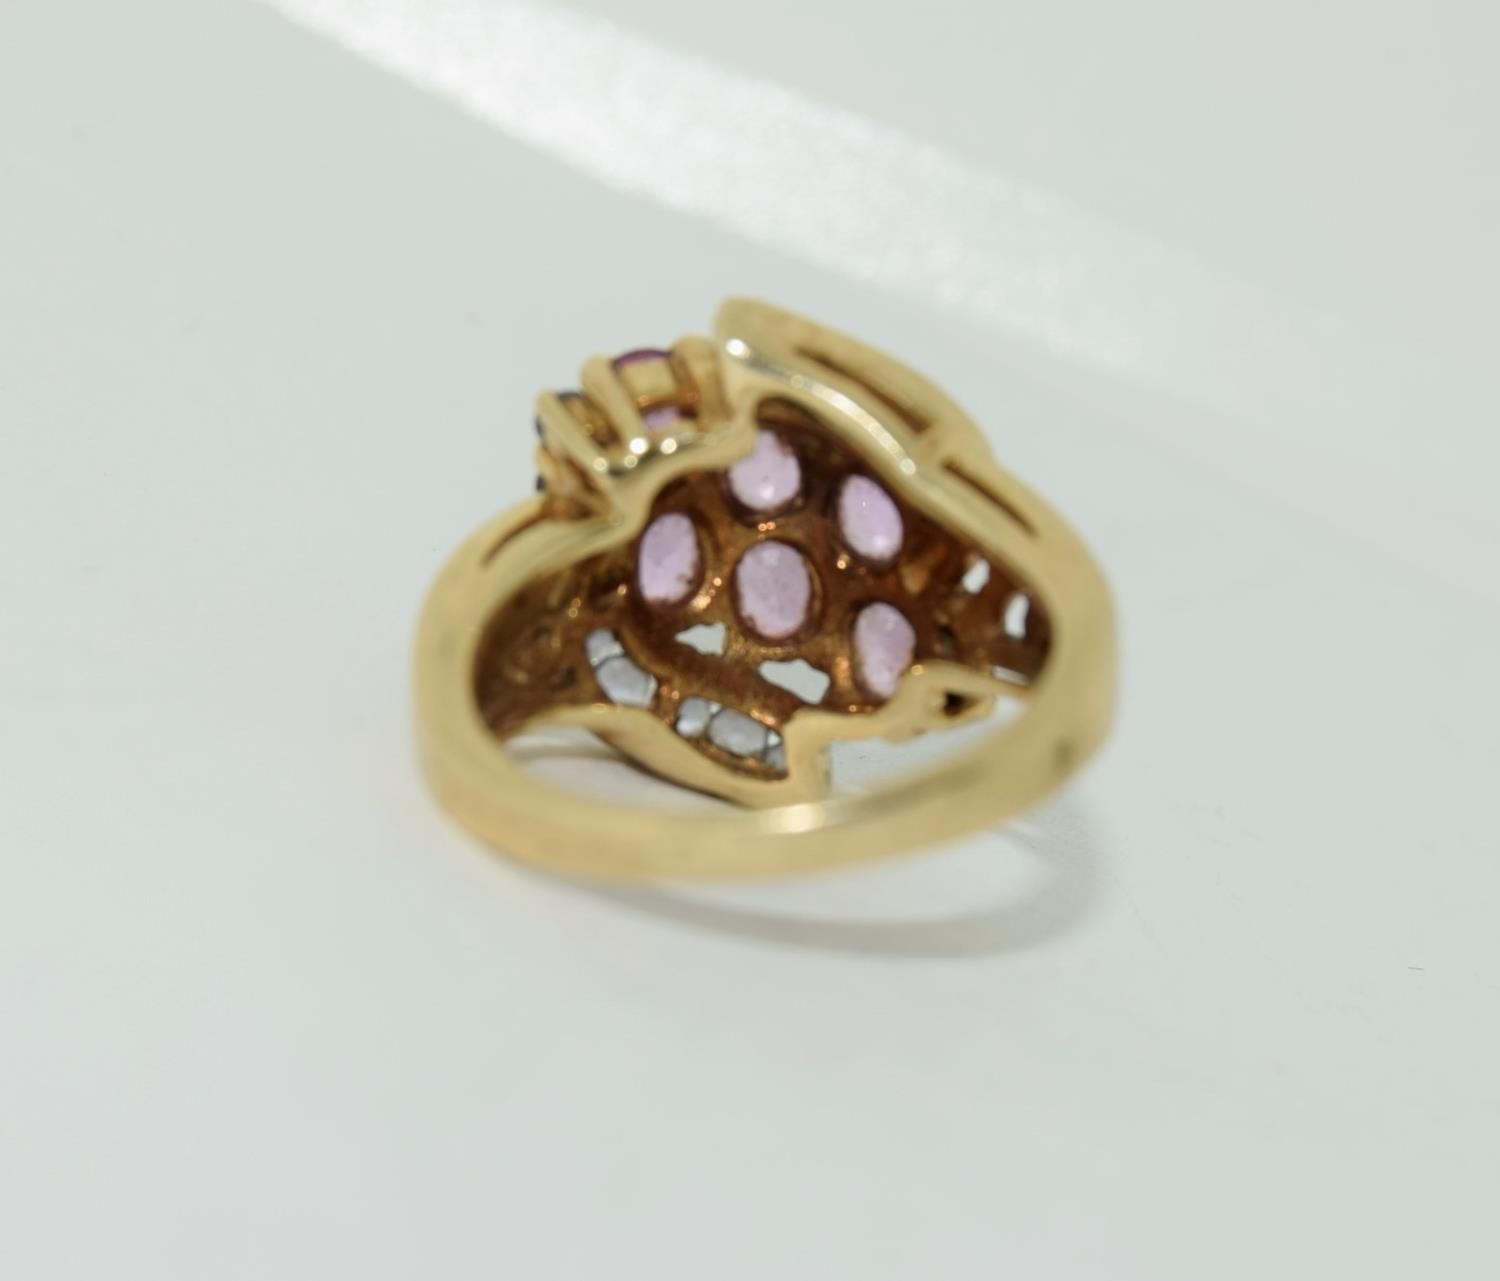 9ct gold ladies pink tourmaline and sapphire twist ring size L 4.9gm - Image 5 of 10